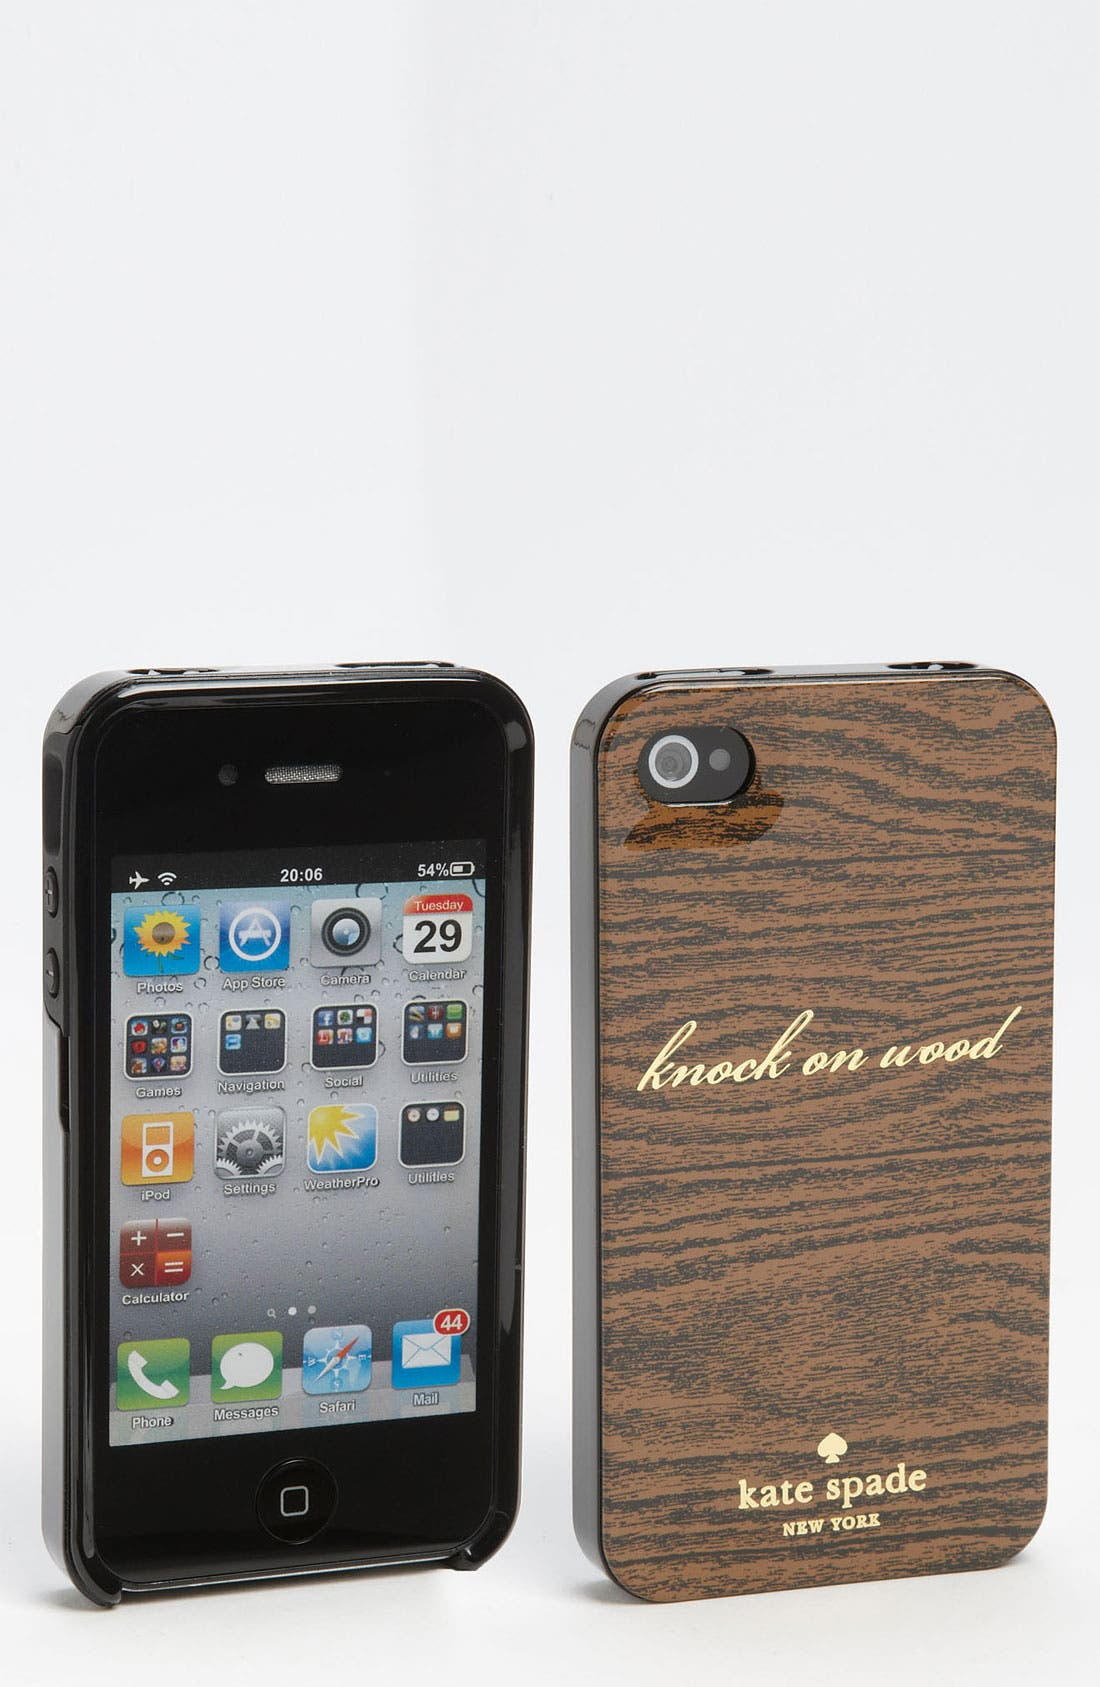 Alternate Image 1 Selected - kate spade new york 'knock on wood' iPhone 4 & 4S case